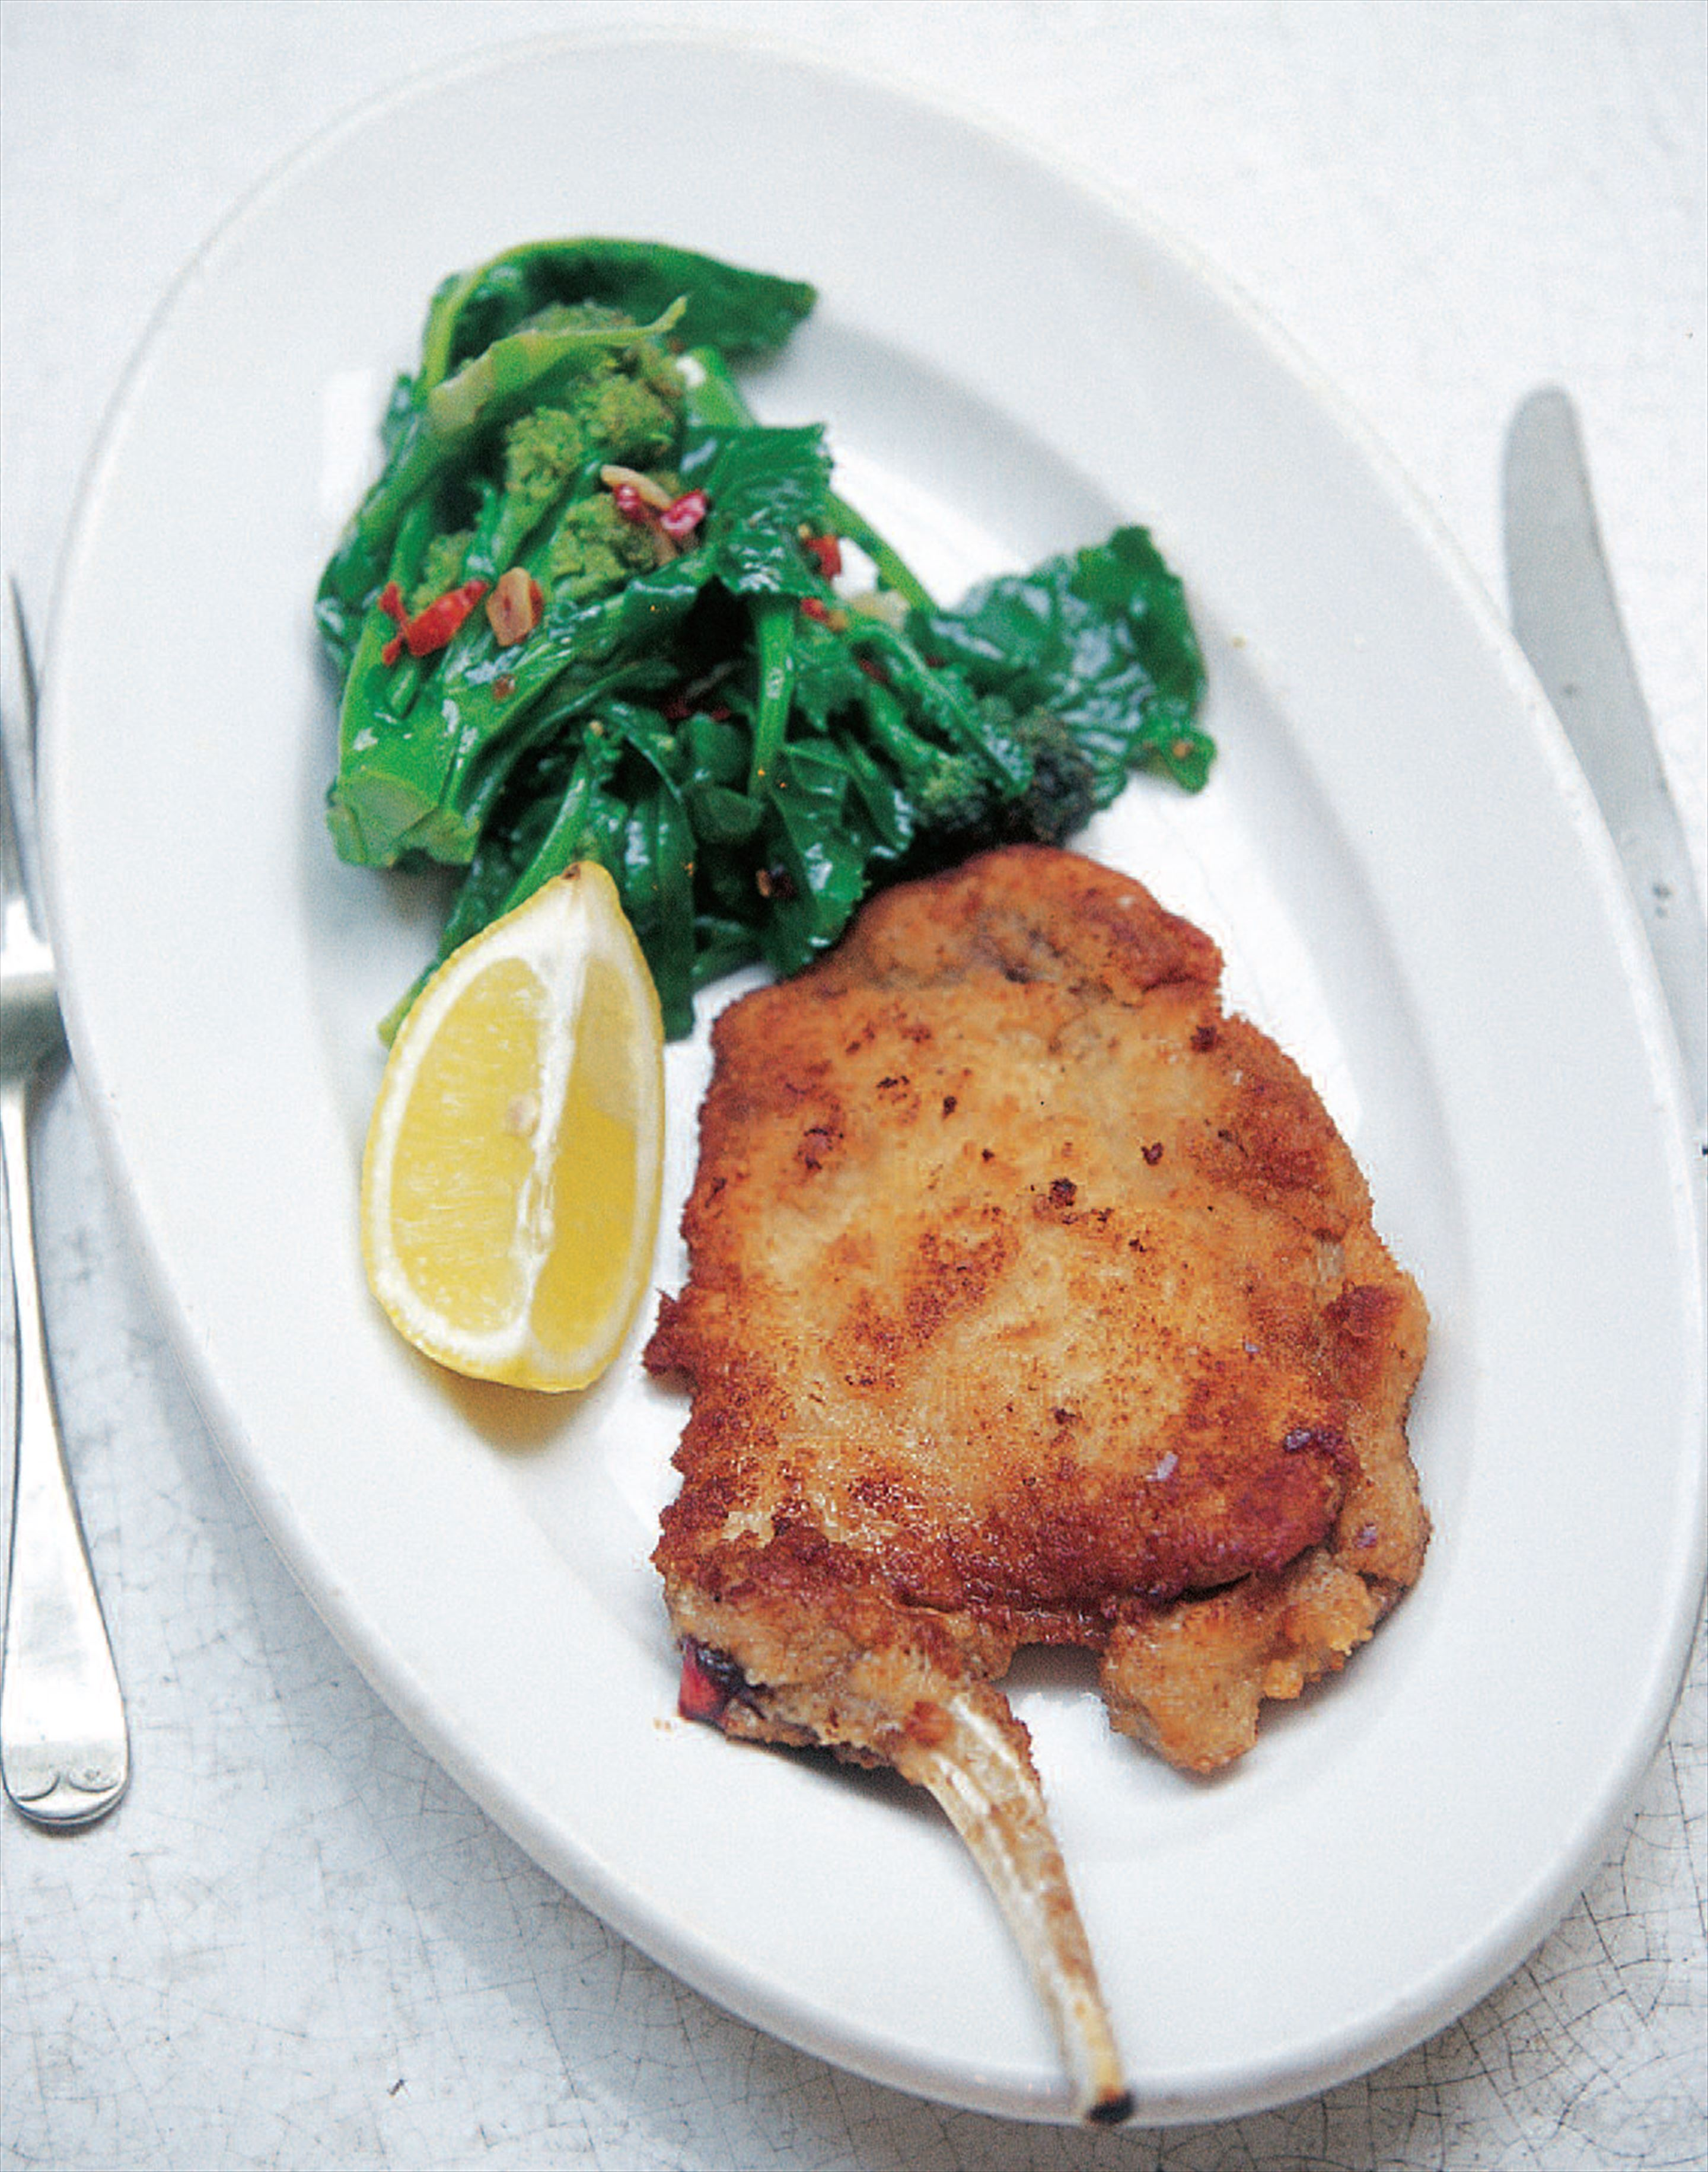 Milanese breaded pork cutlet with broccoli